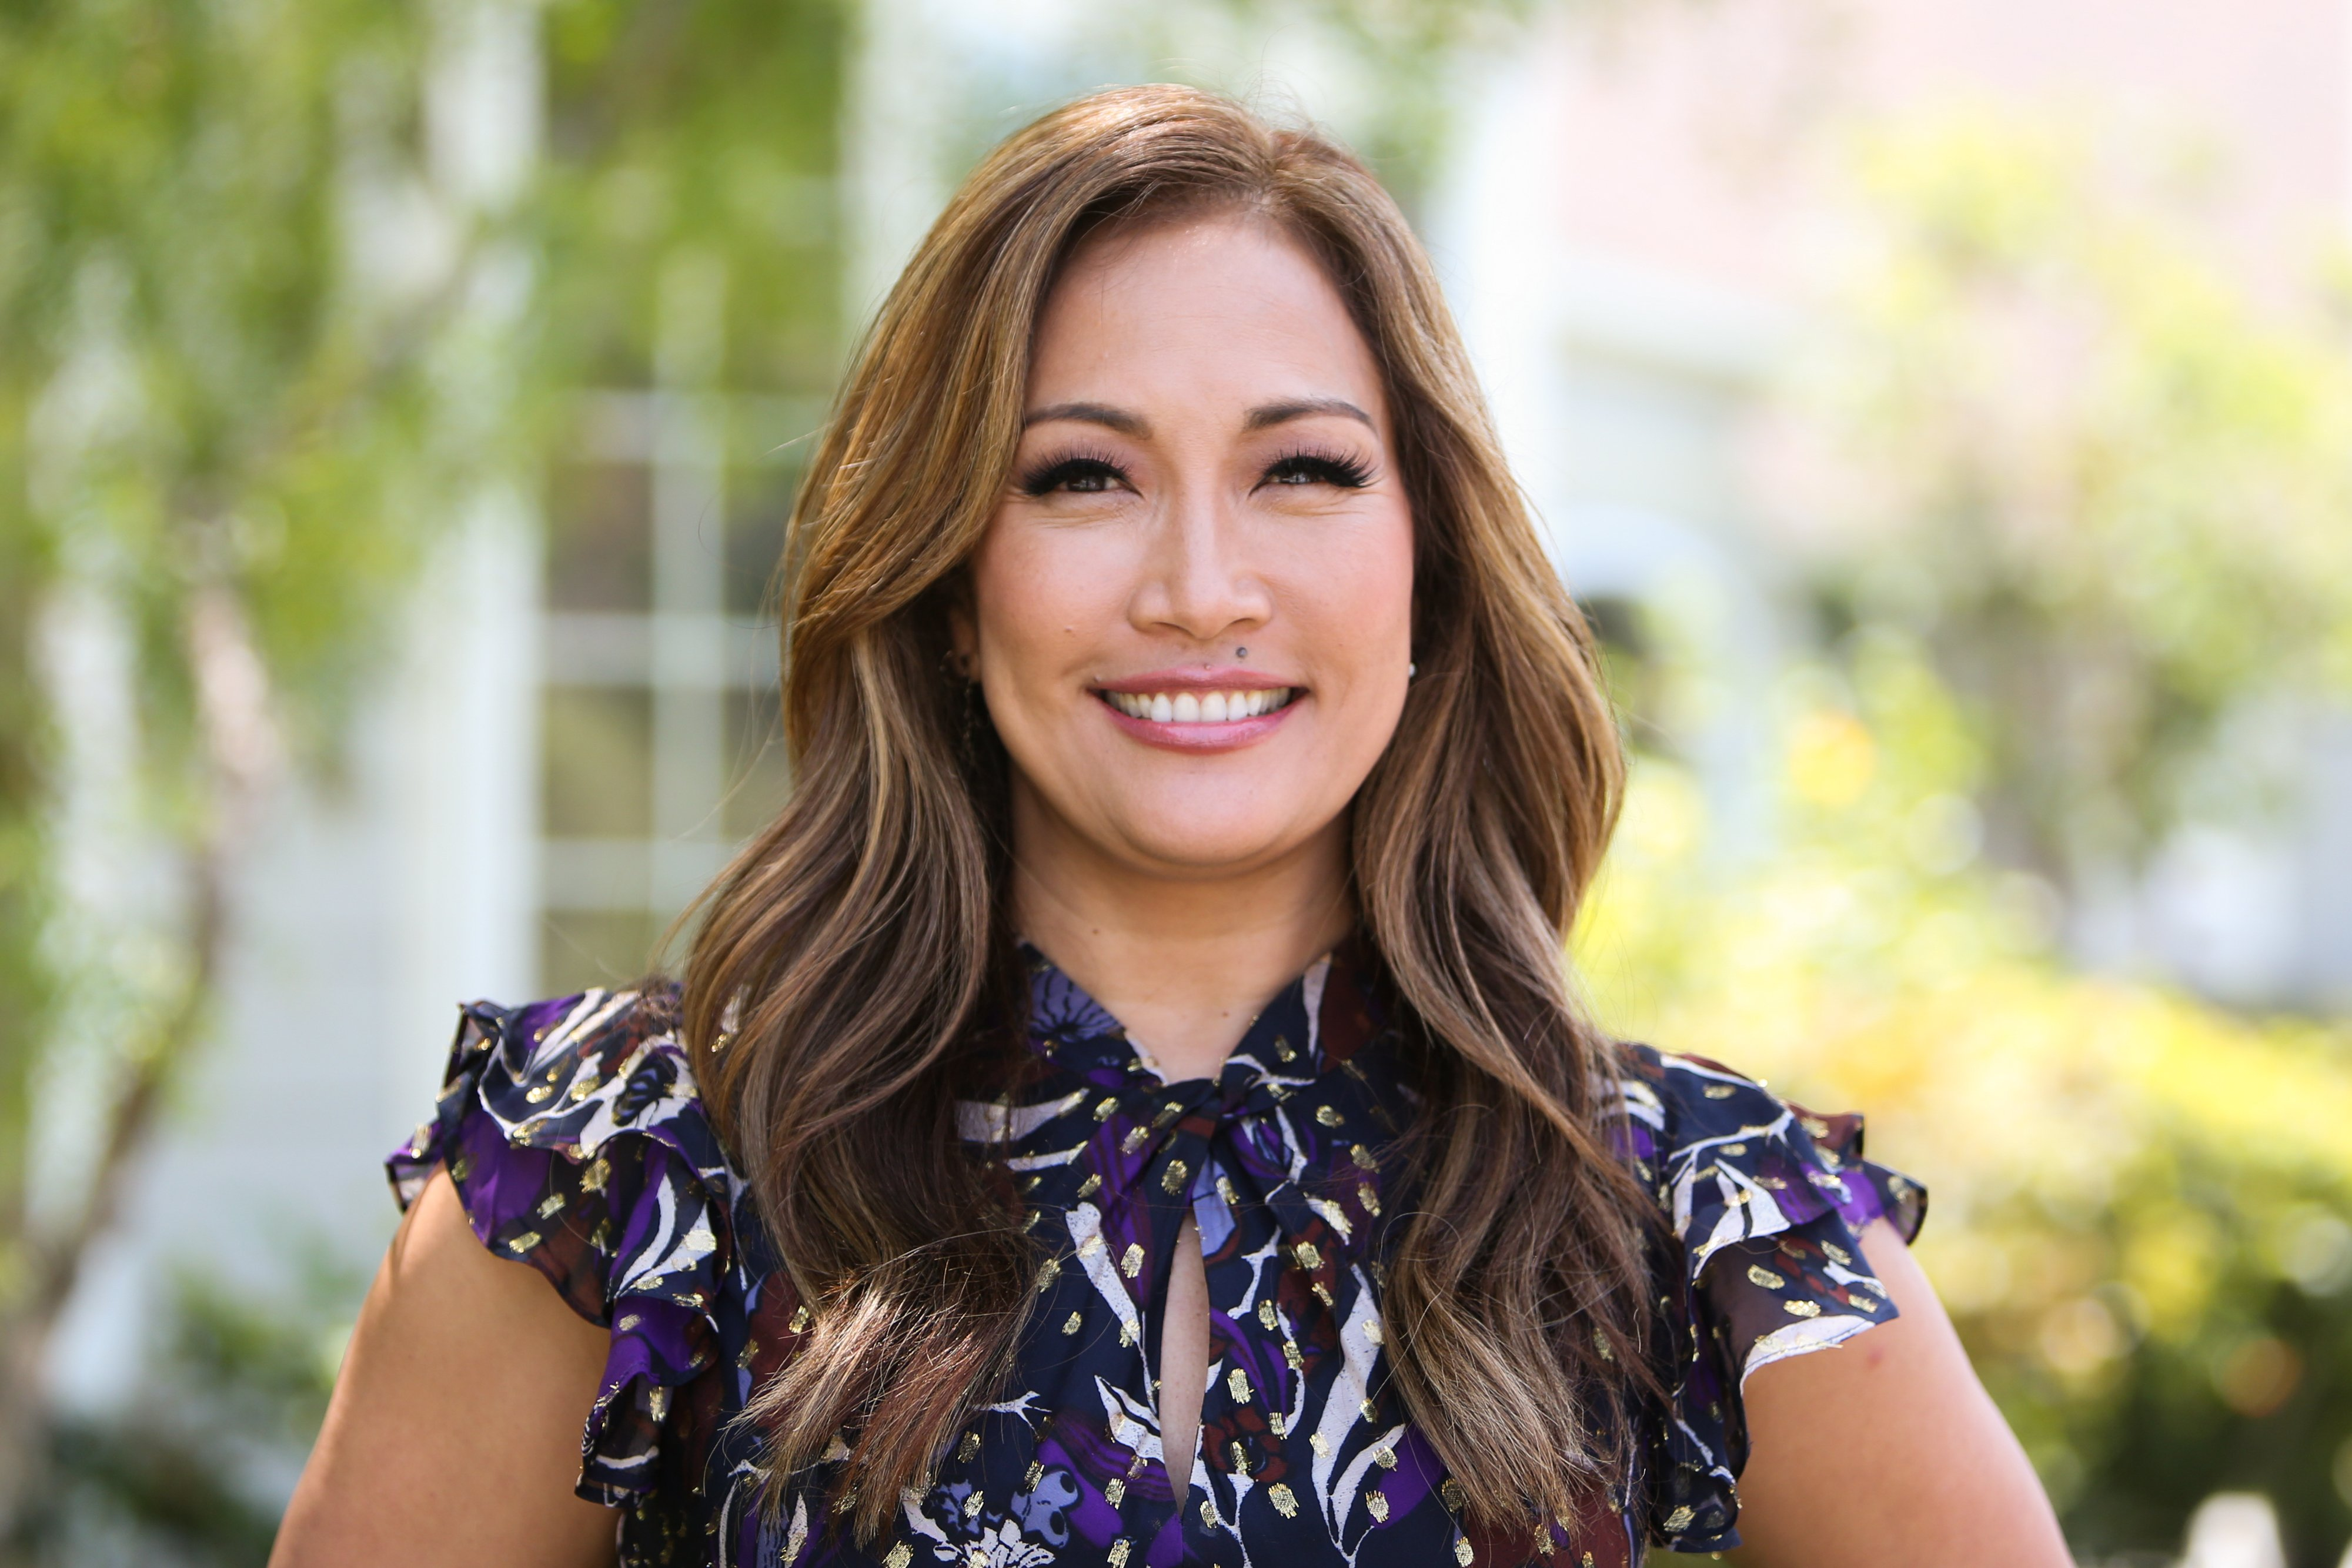 """Carrie Ann Inaba pictured visiting Hallmark's """"Home & Family"""" at Universal Studios Hollywood, 2019, California. 